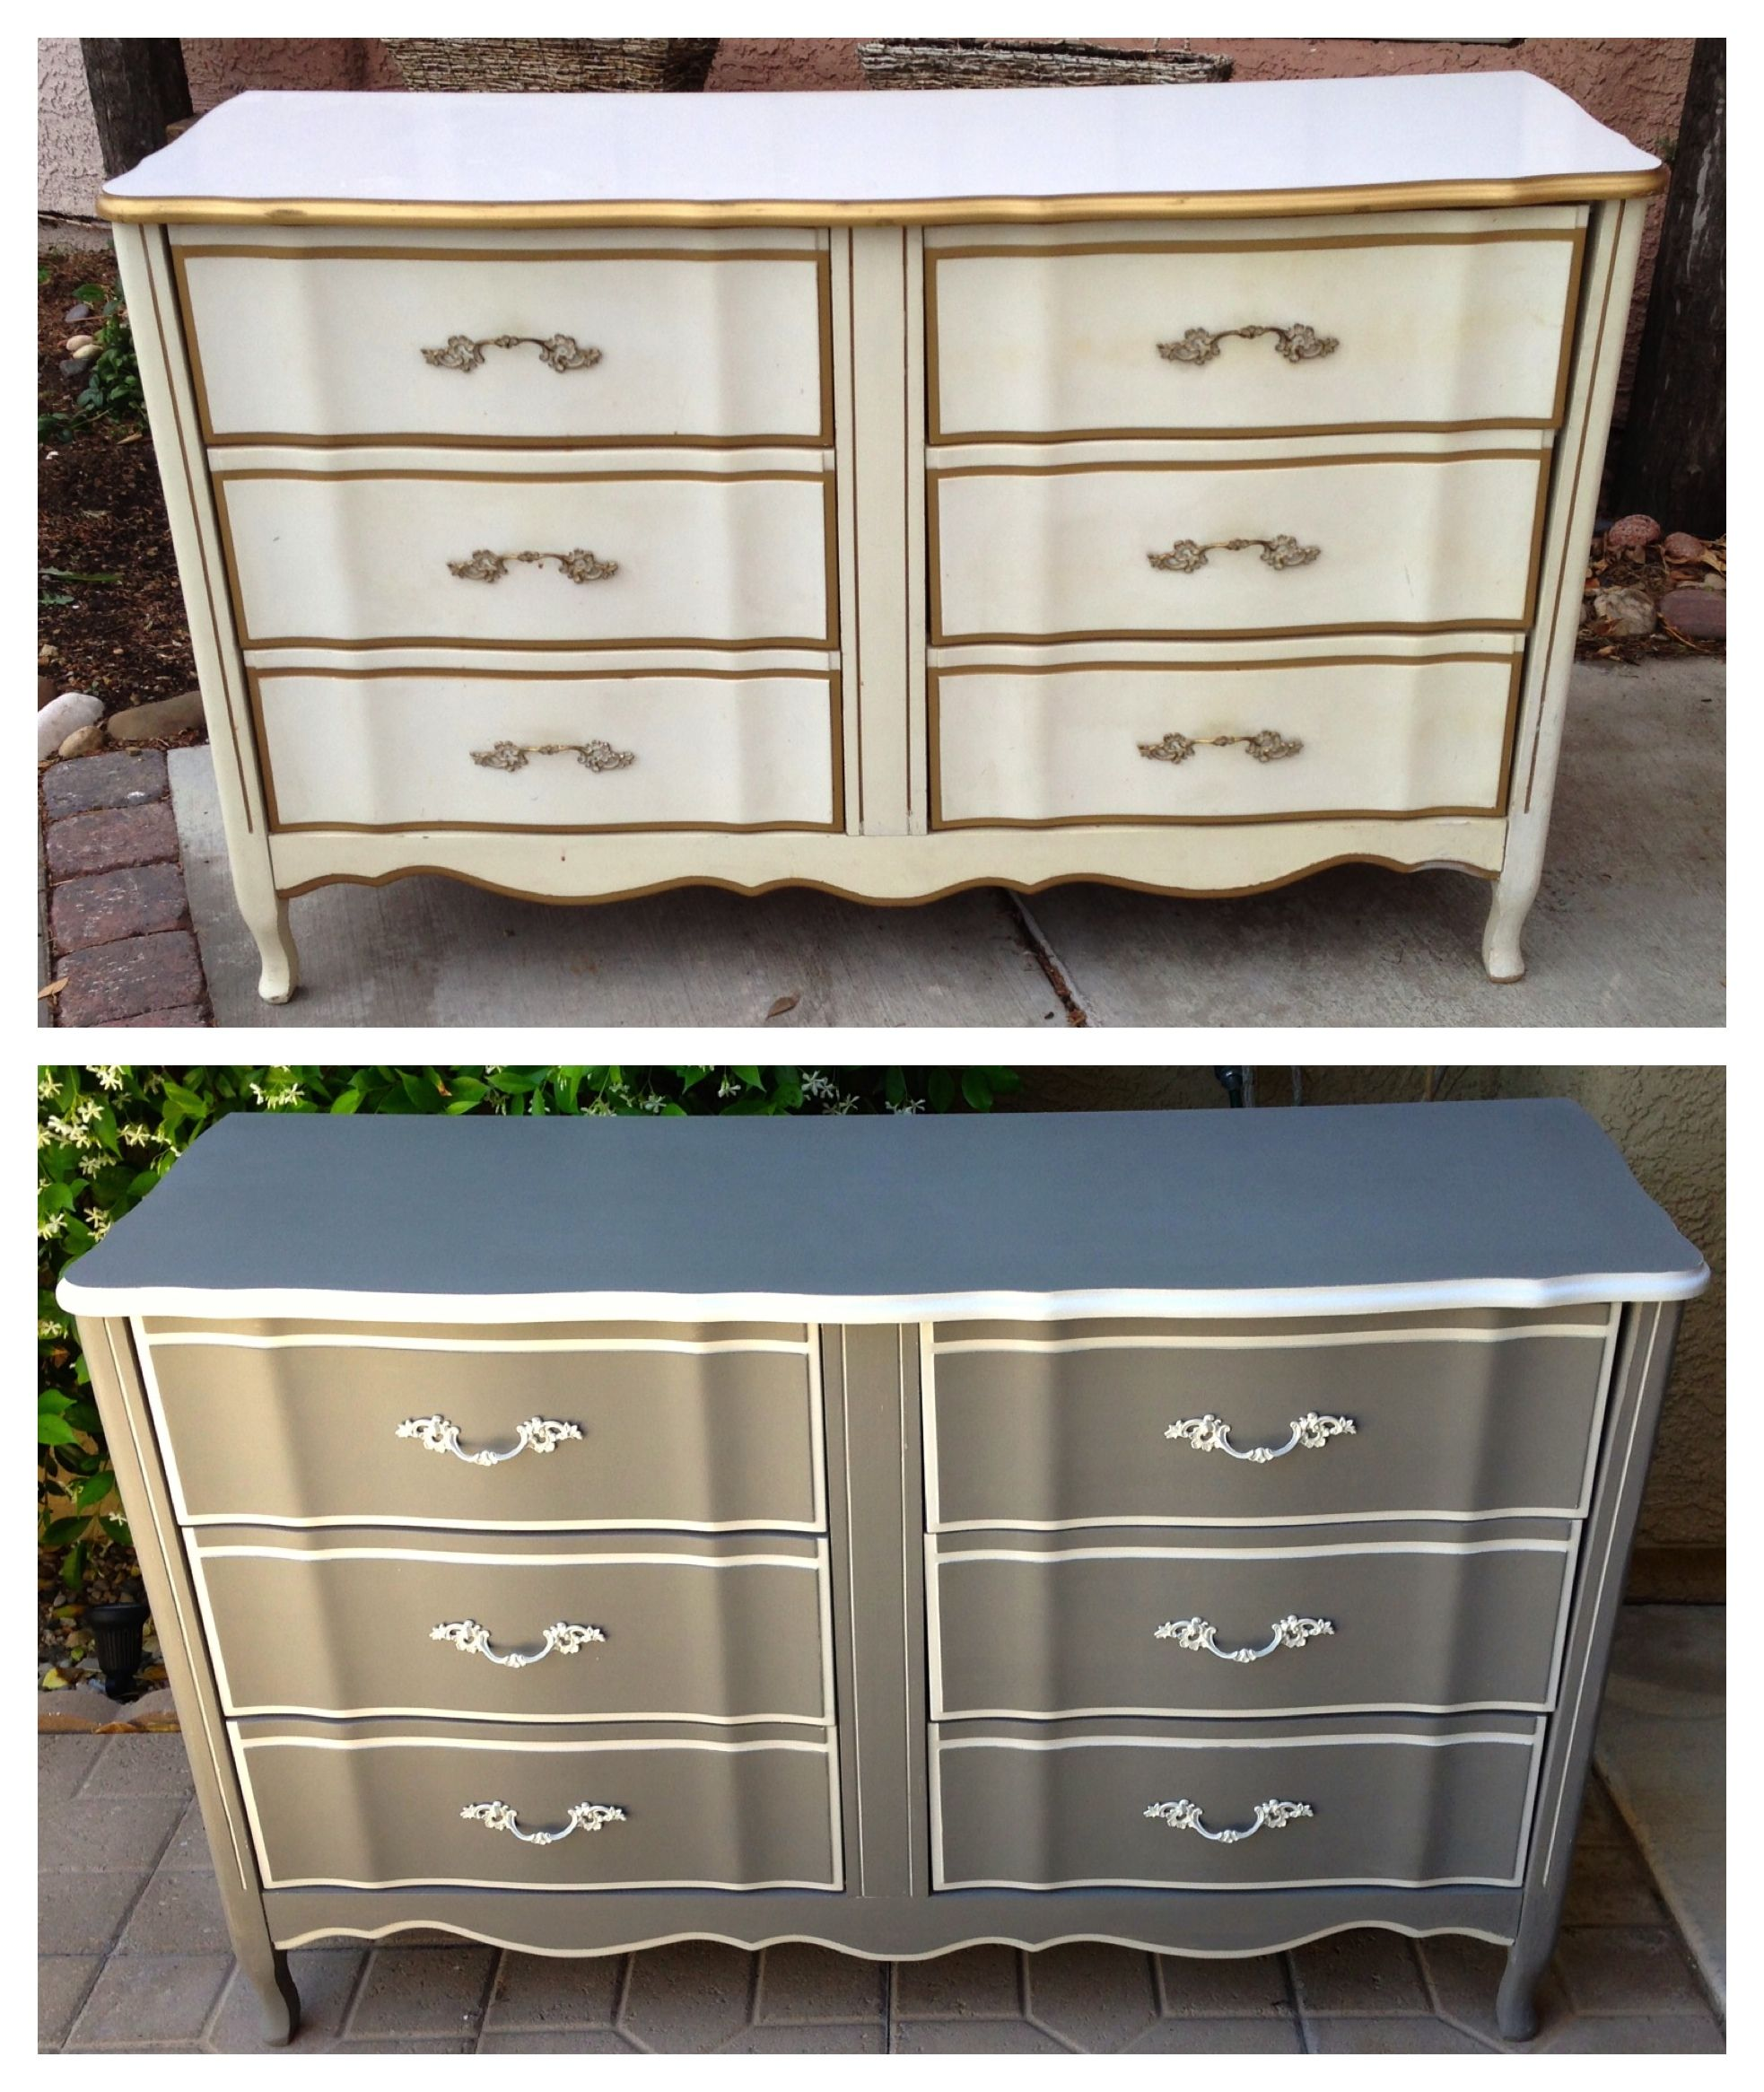 Vintage, shabby, refinished, painted